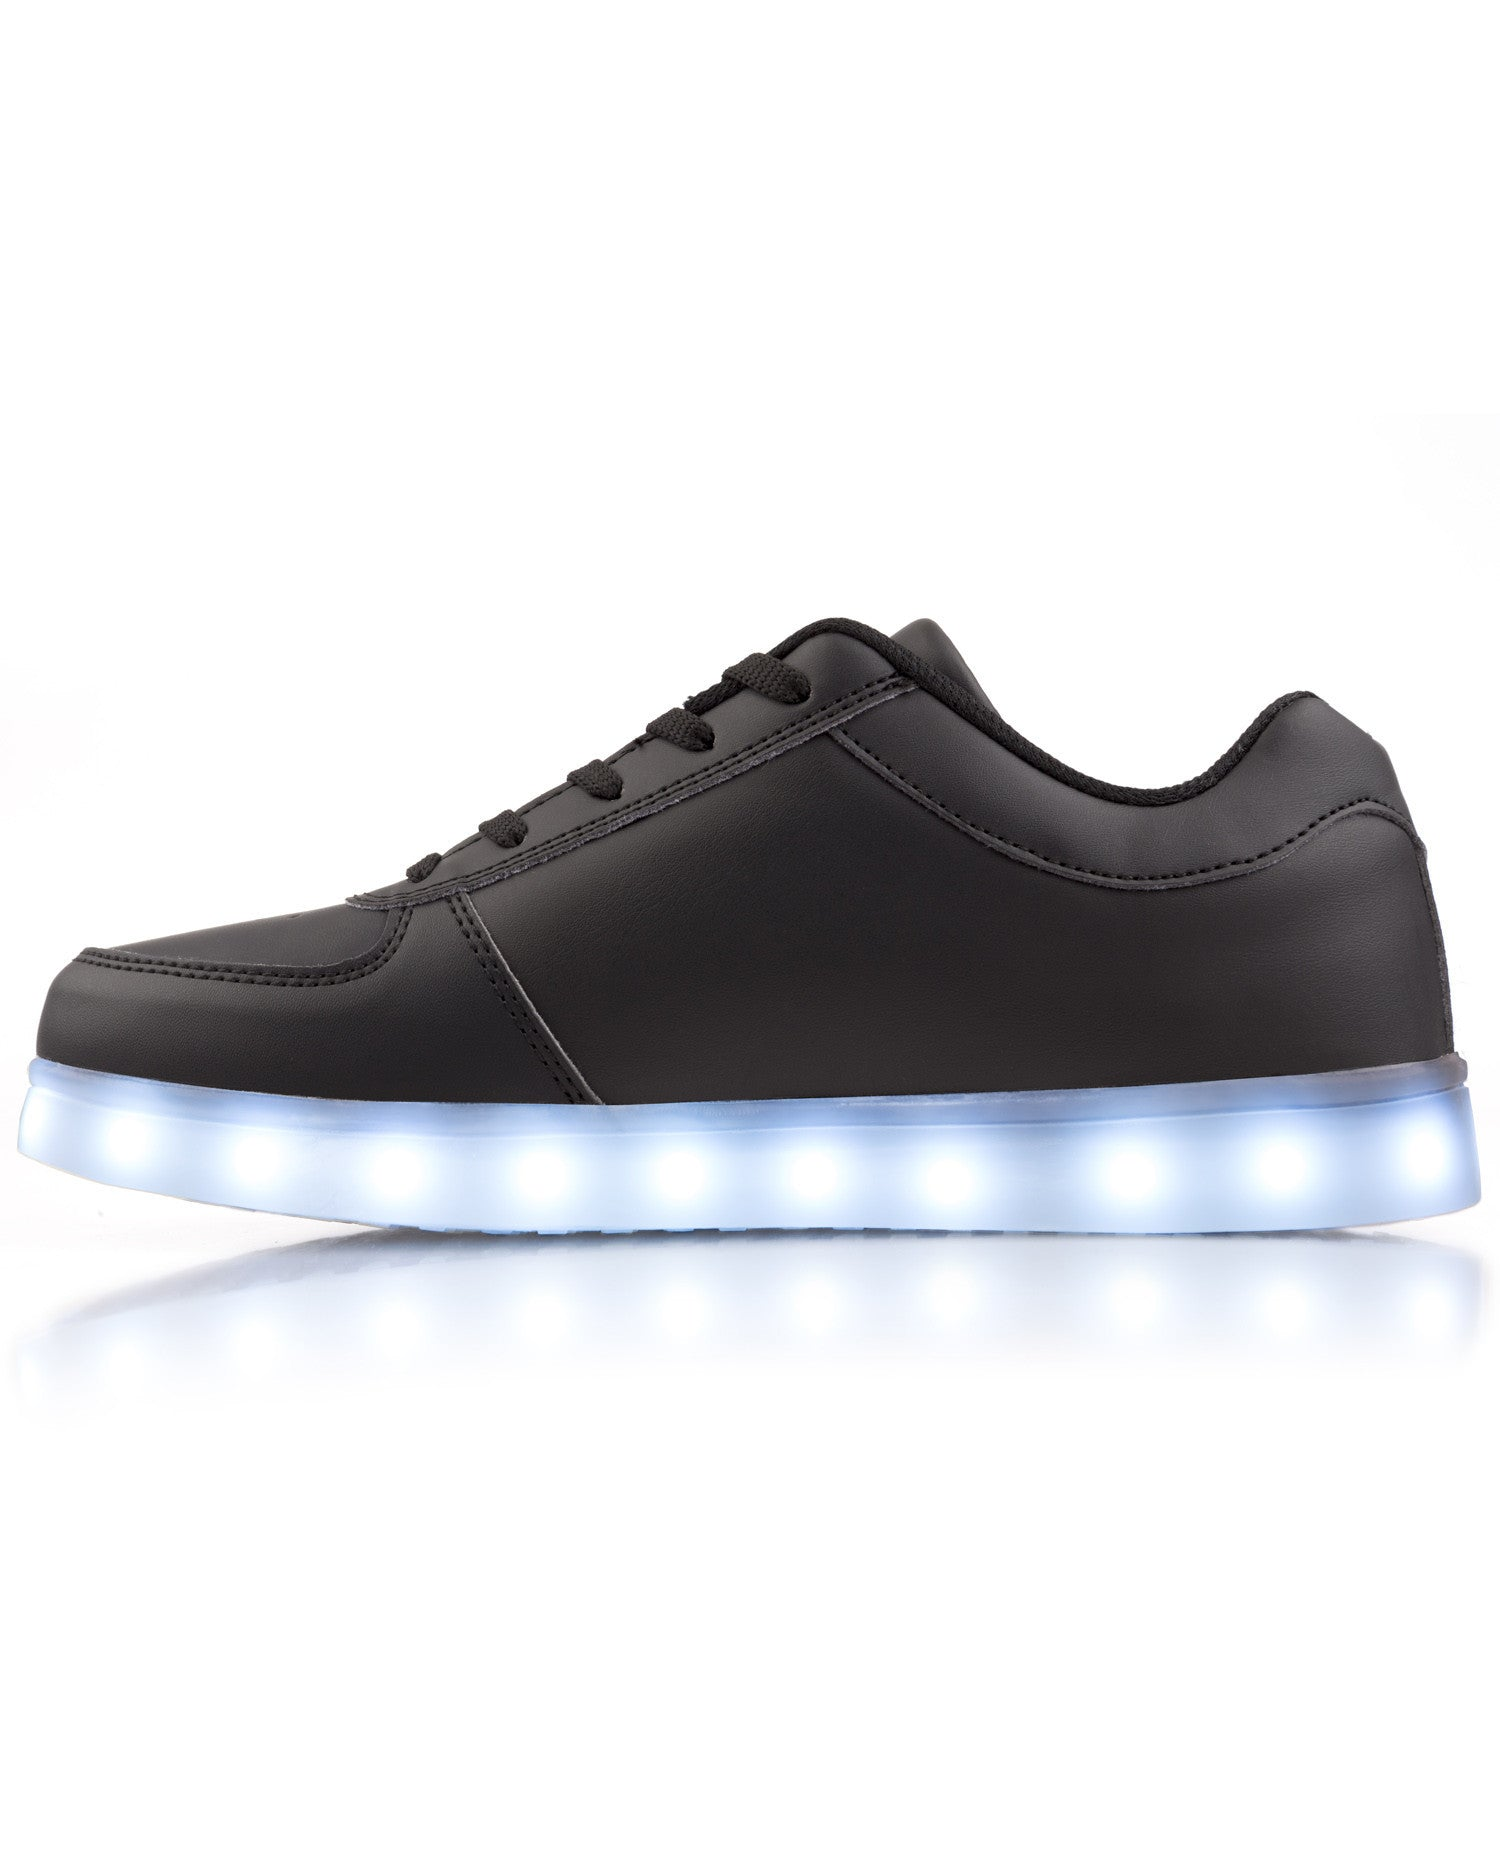 Electric Shoes - All Black - Electric Styles | World's Number 1 Light Up Shoe Store - {product_type}} -  - 6